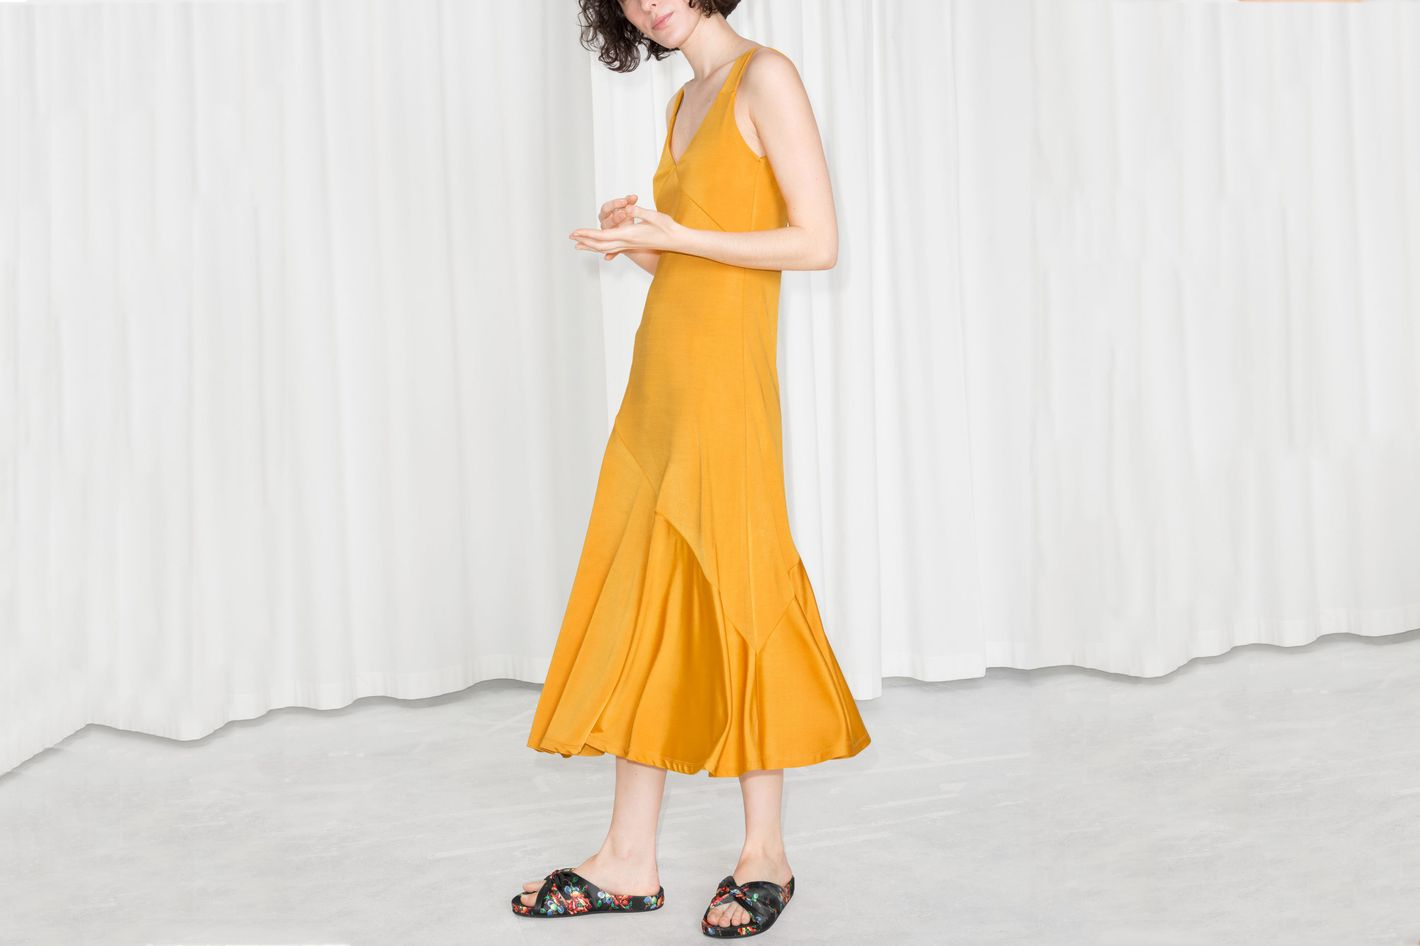 & Other Stories Asymmetrical Flowy Midi Dress